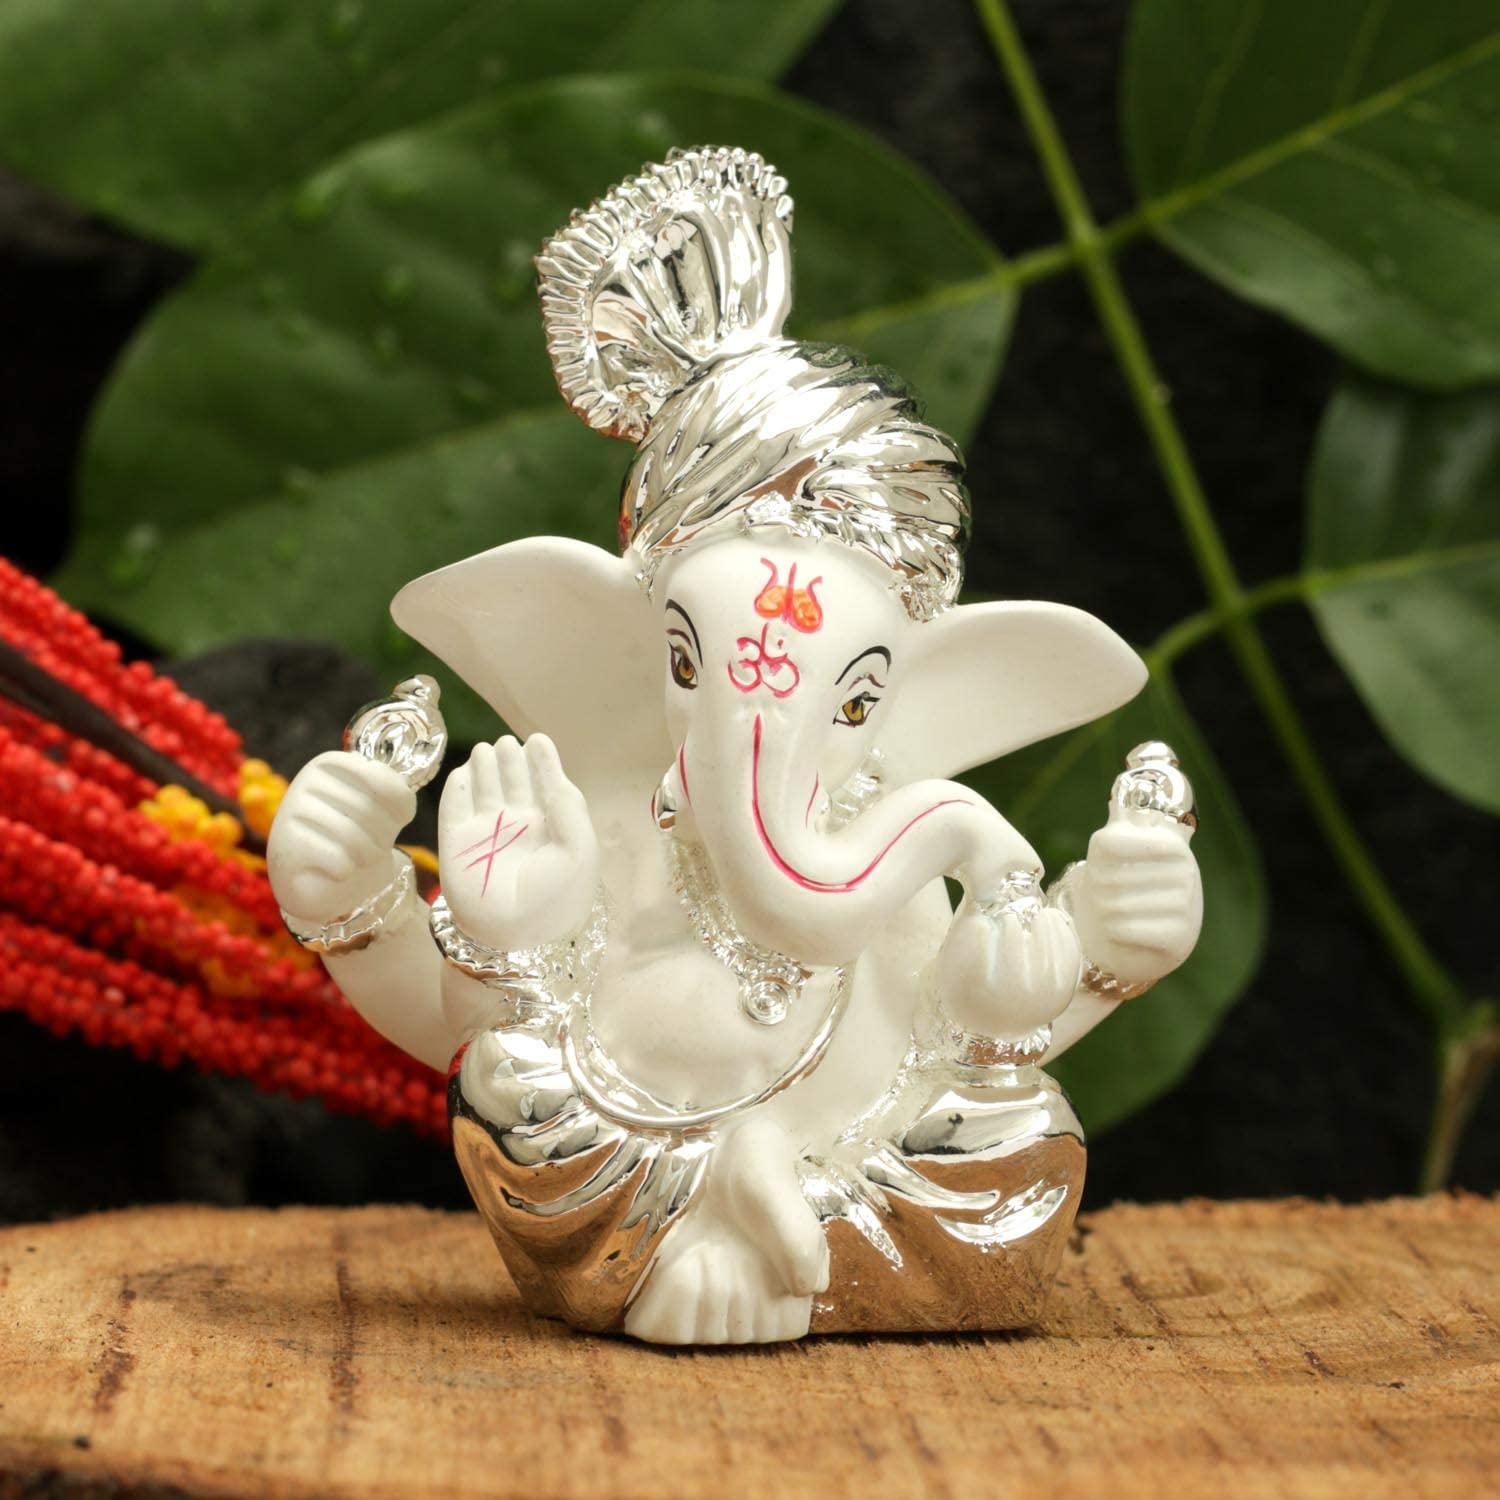 CraftVatika Silver Plated Pagdi Ganesha for Car Dashboard Lord Ganesh Ganpati Idols Home Decor Gifts for Family and Friends (Size 8 x 6 cm)